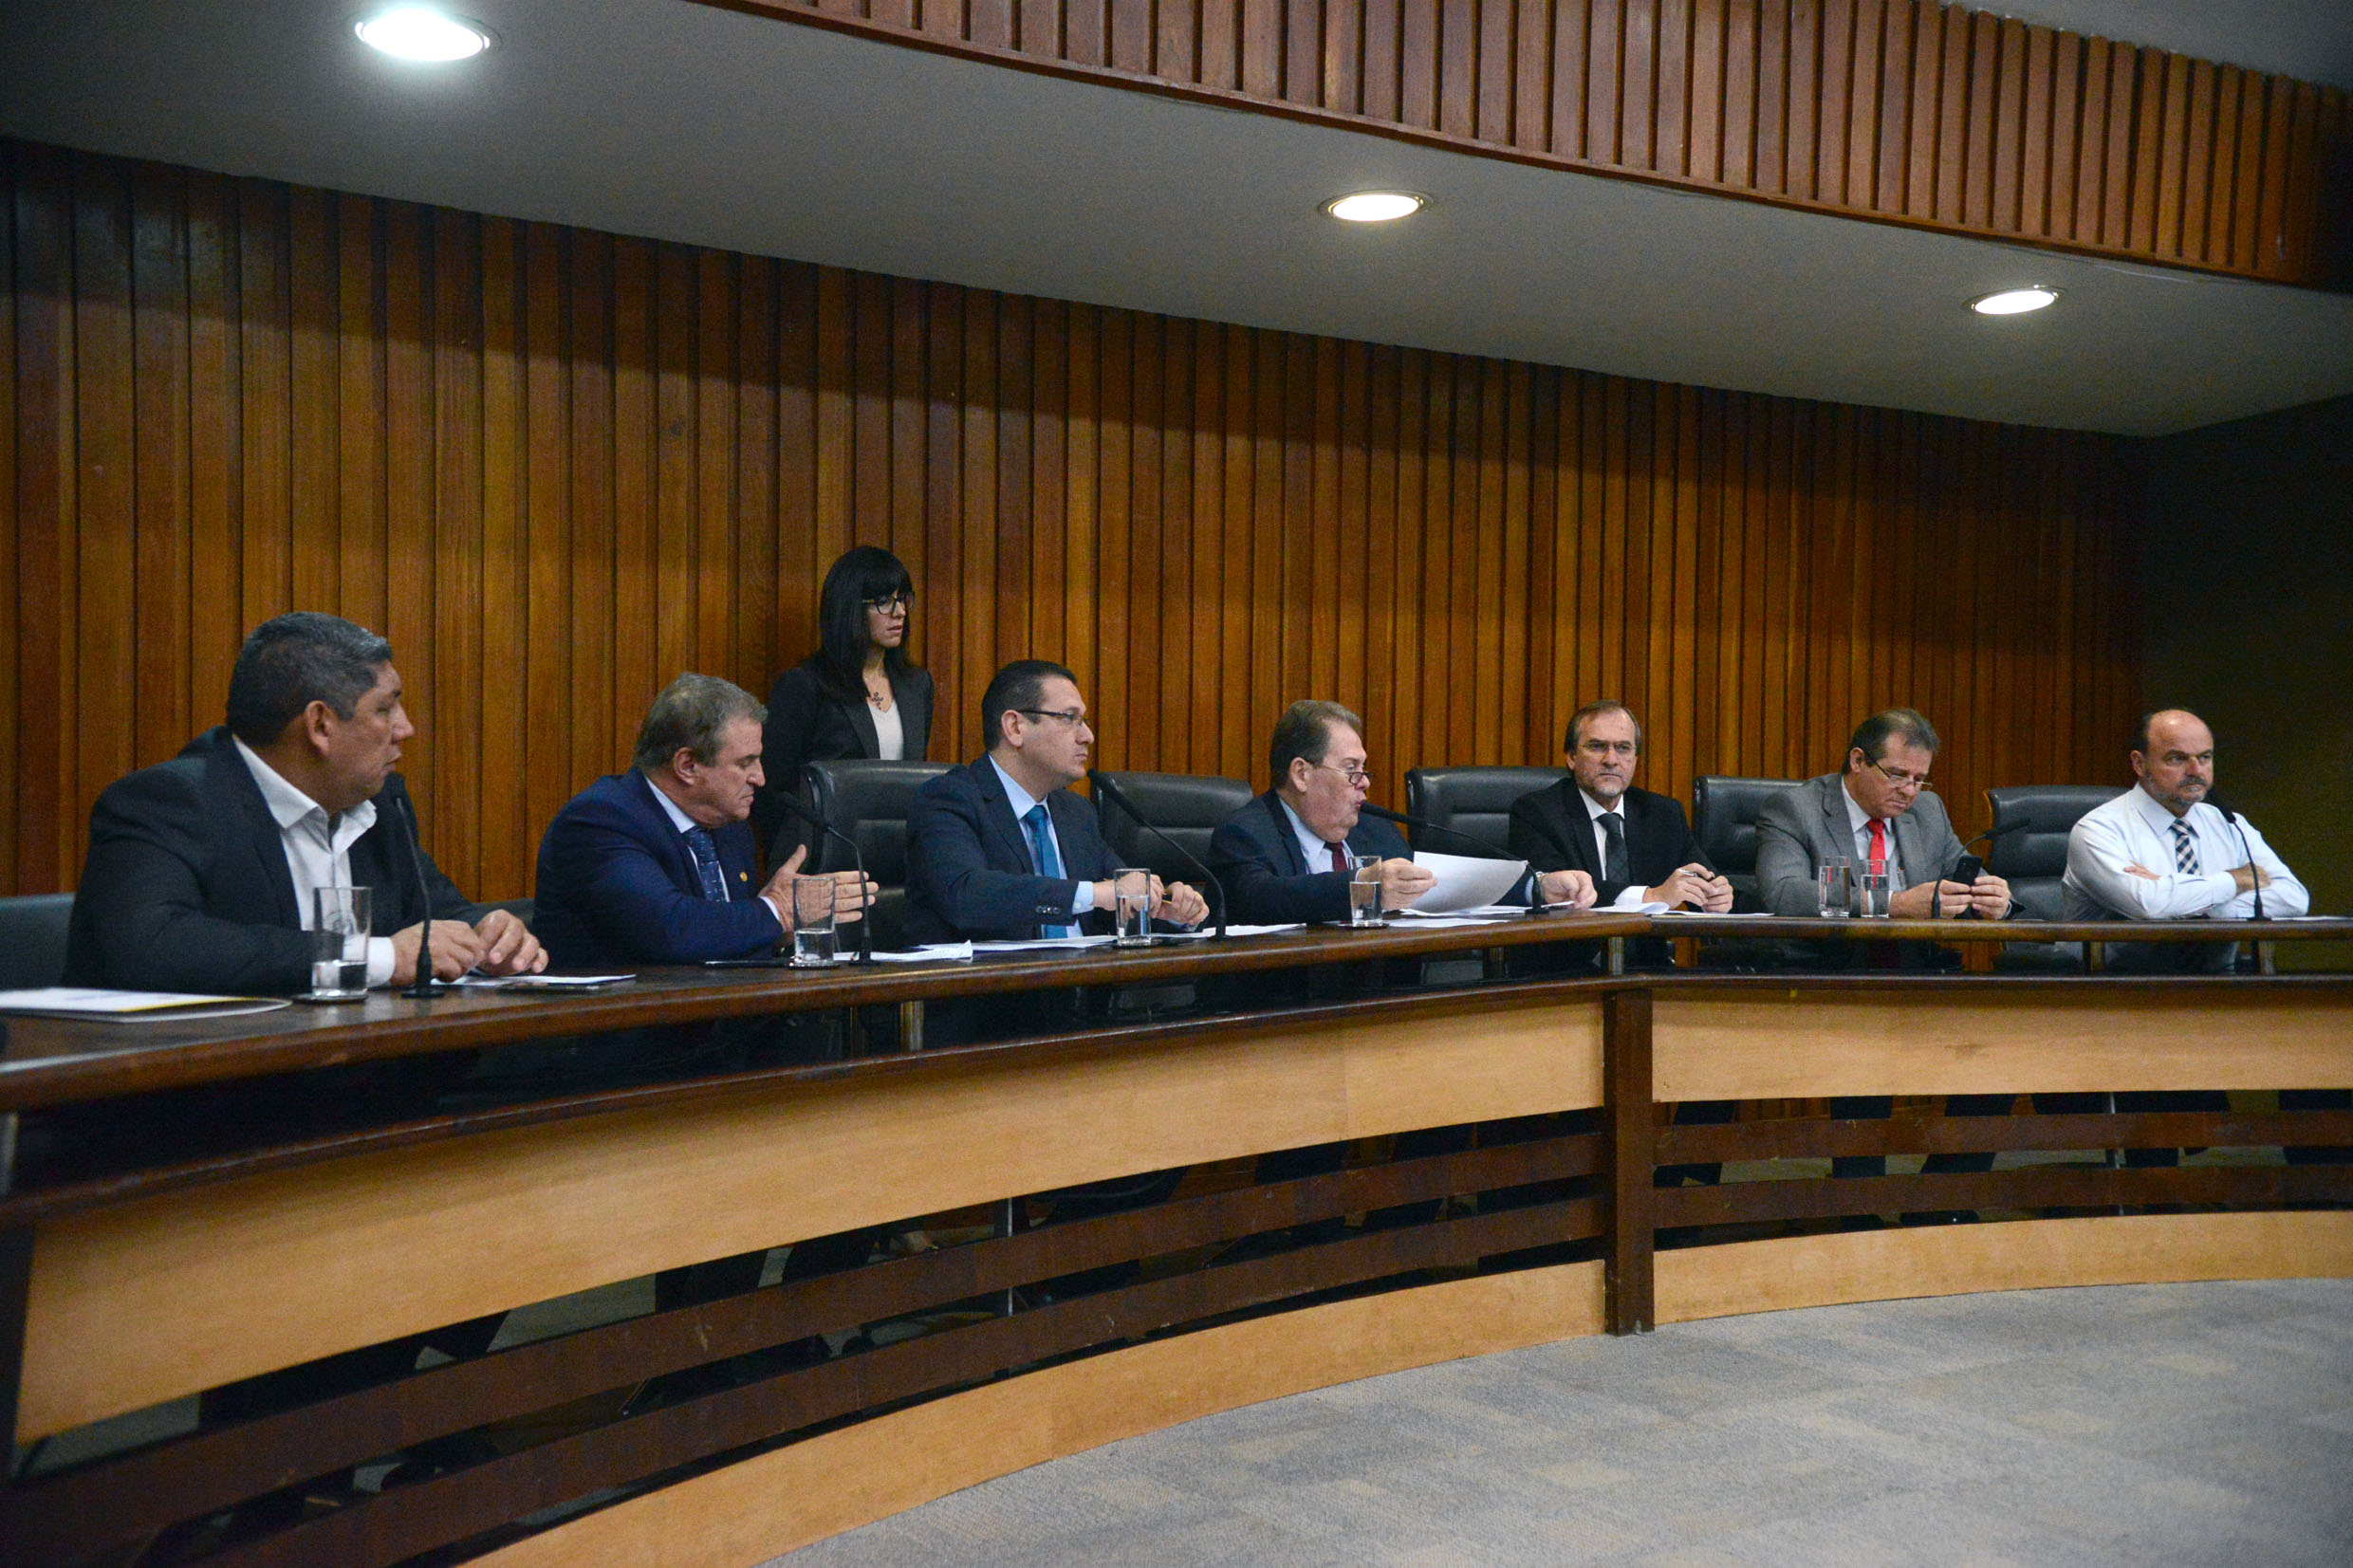 Parlamentares na CPI<a style='float:right' href='https://www3.al.sp.gov.br/repositorio/noticia/N-06-2019/fg235643.jpg' target=_blank><img src='/_img/material-file-download-white.png' width='14px' alt='Clique para baixar a imagem'></a>